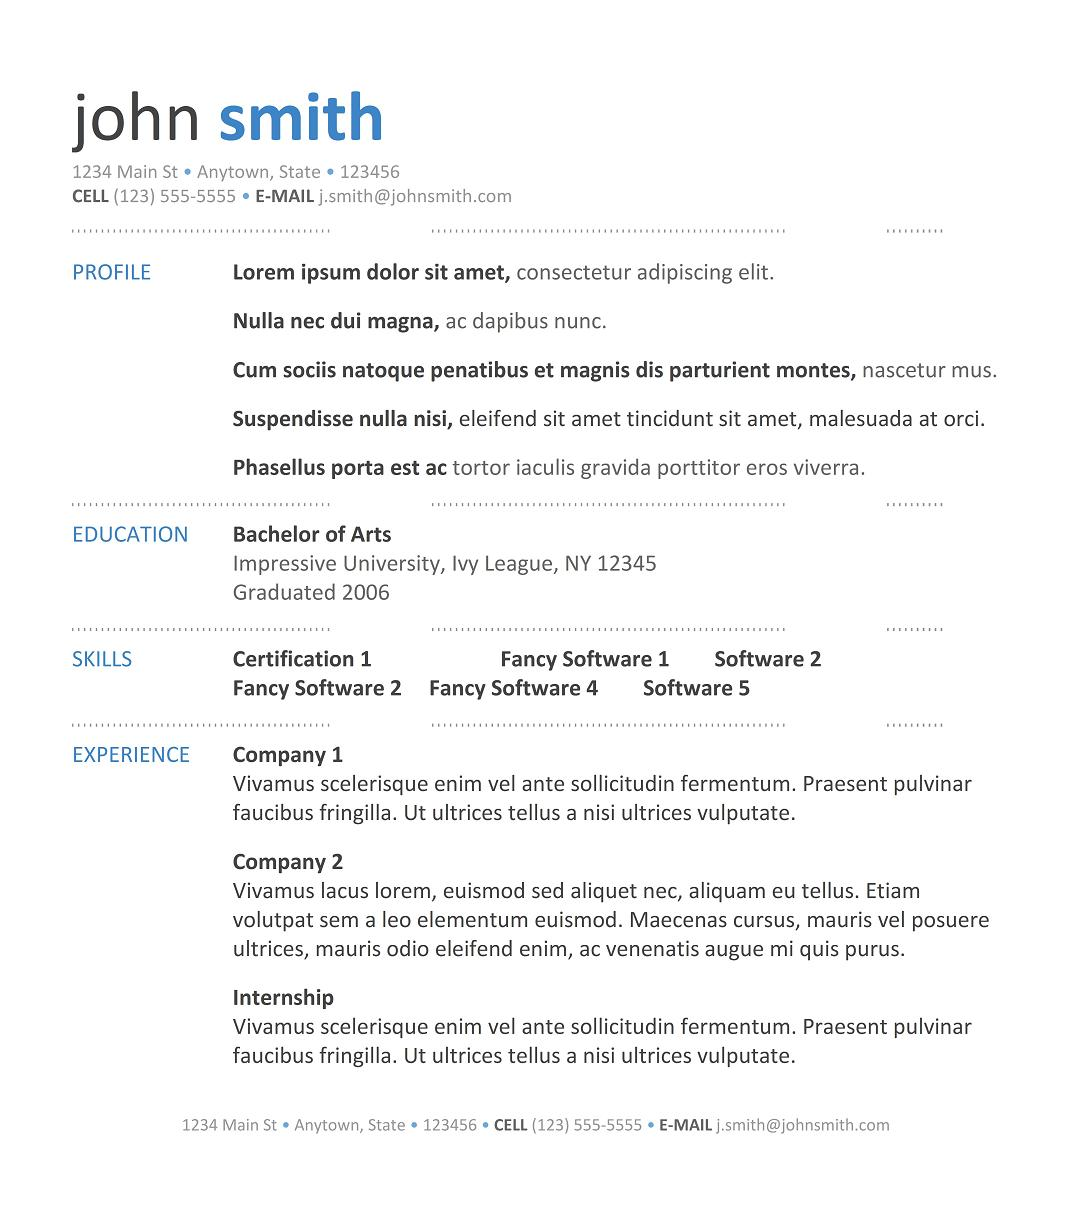 9 best free resume templates download for freshers | Best ...